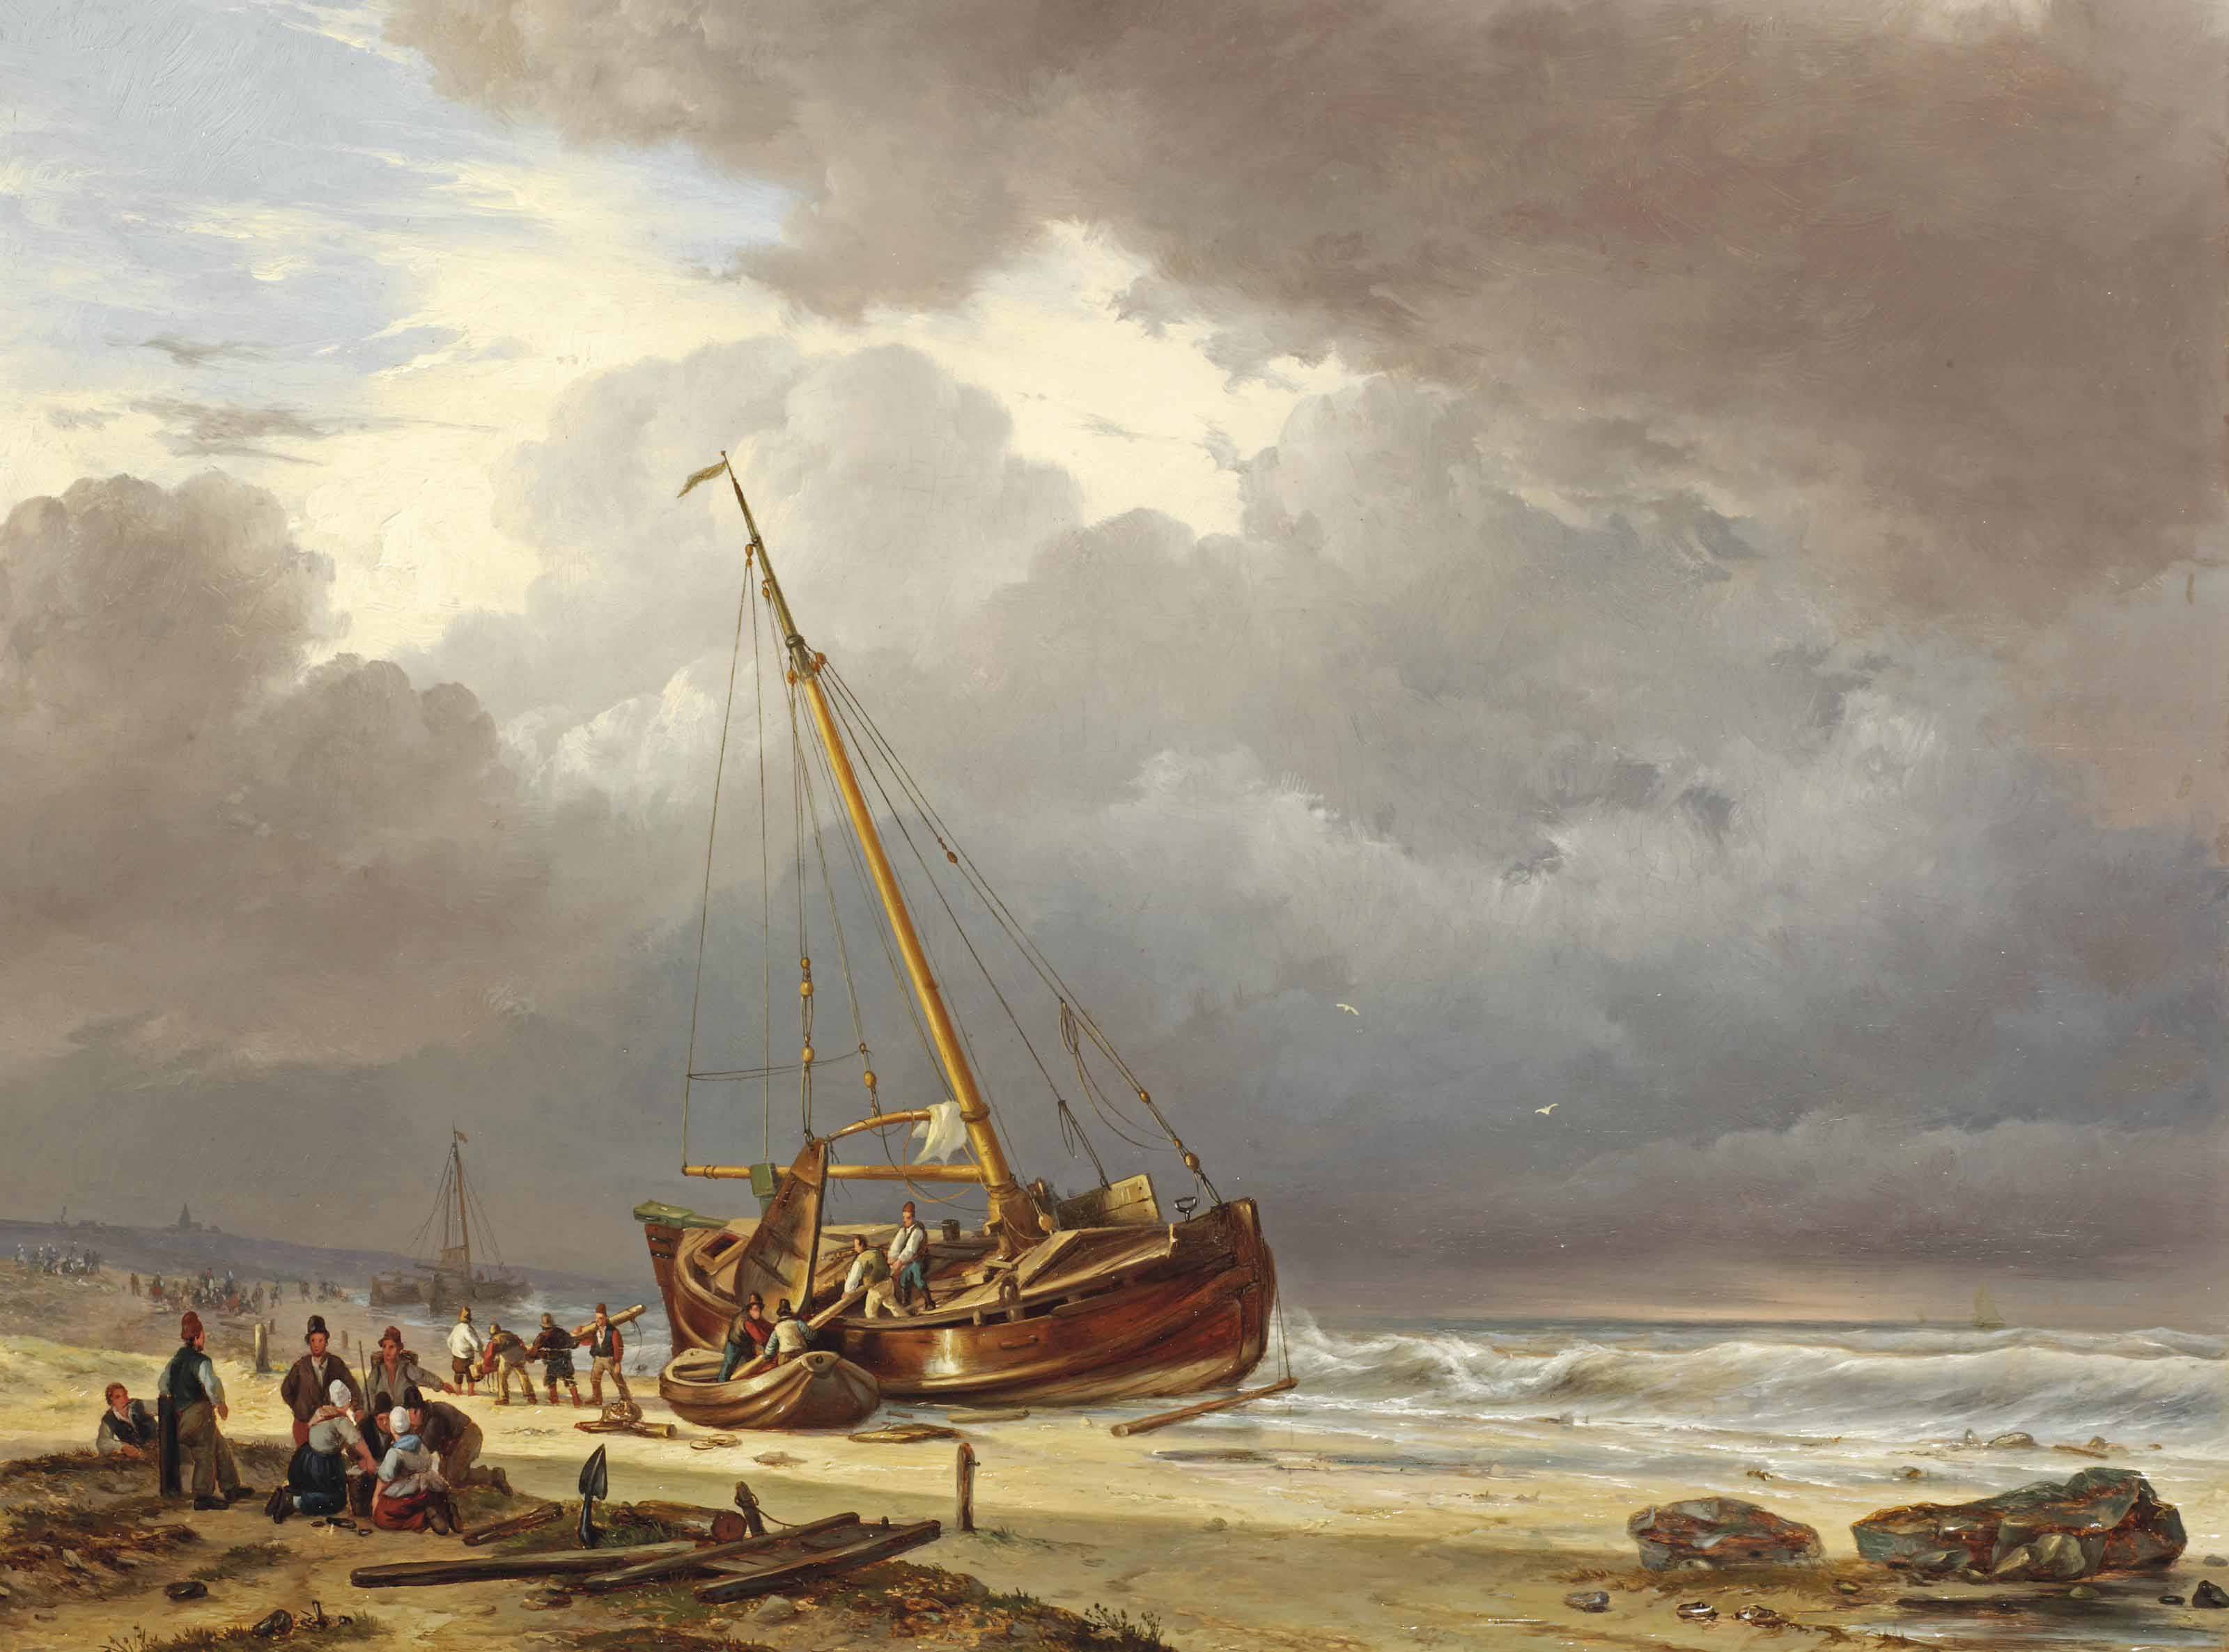 Fishermen unloading their barge on the beach